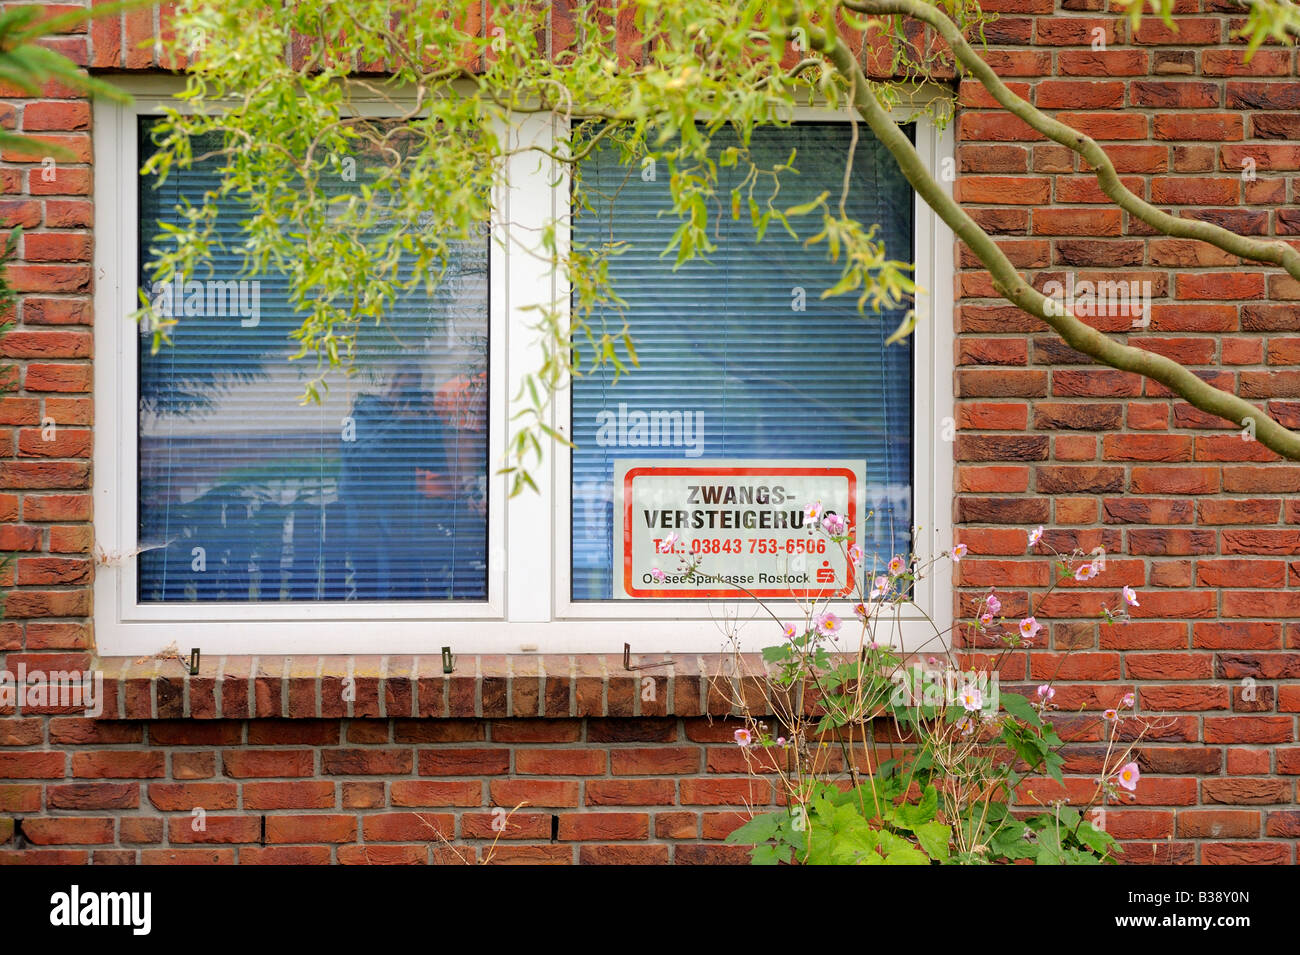 auction sale of a house in Germany Stock Photo